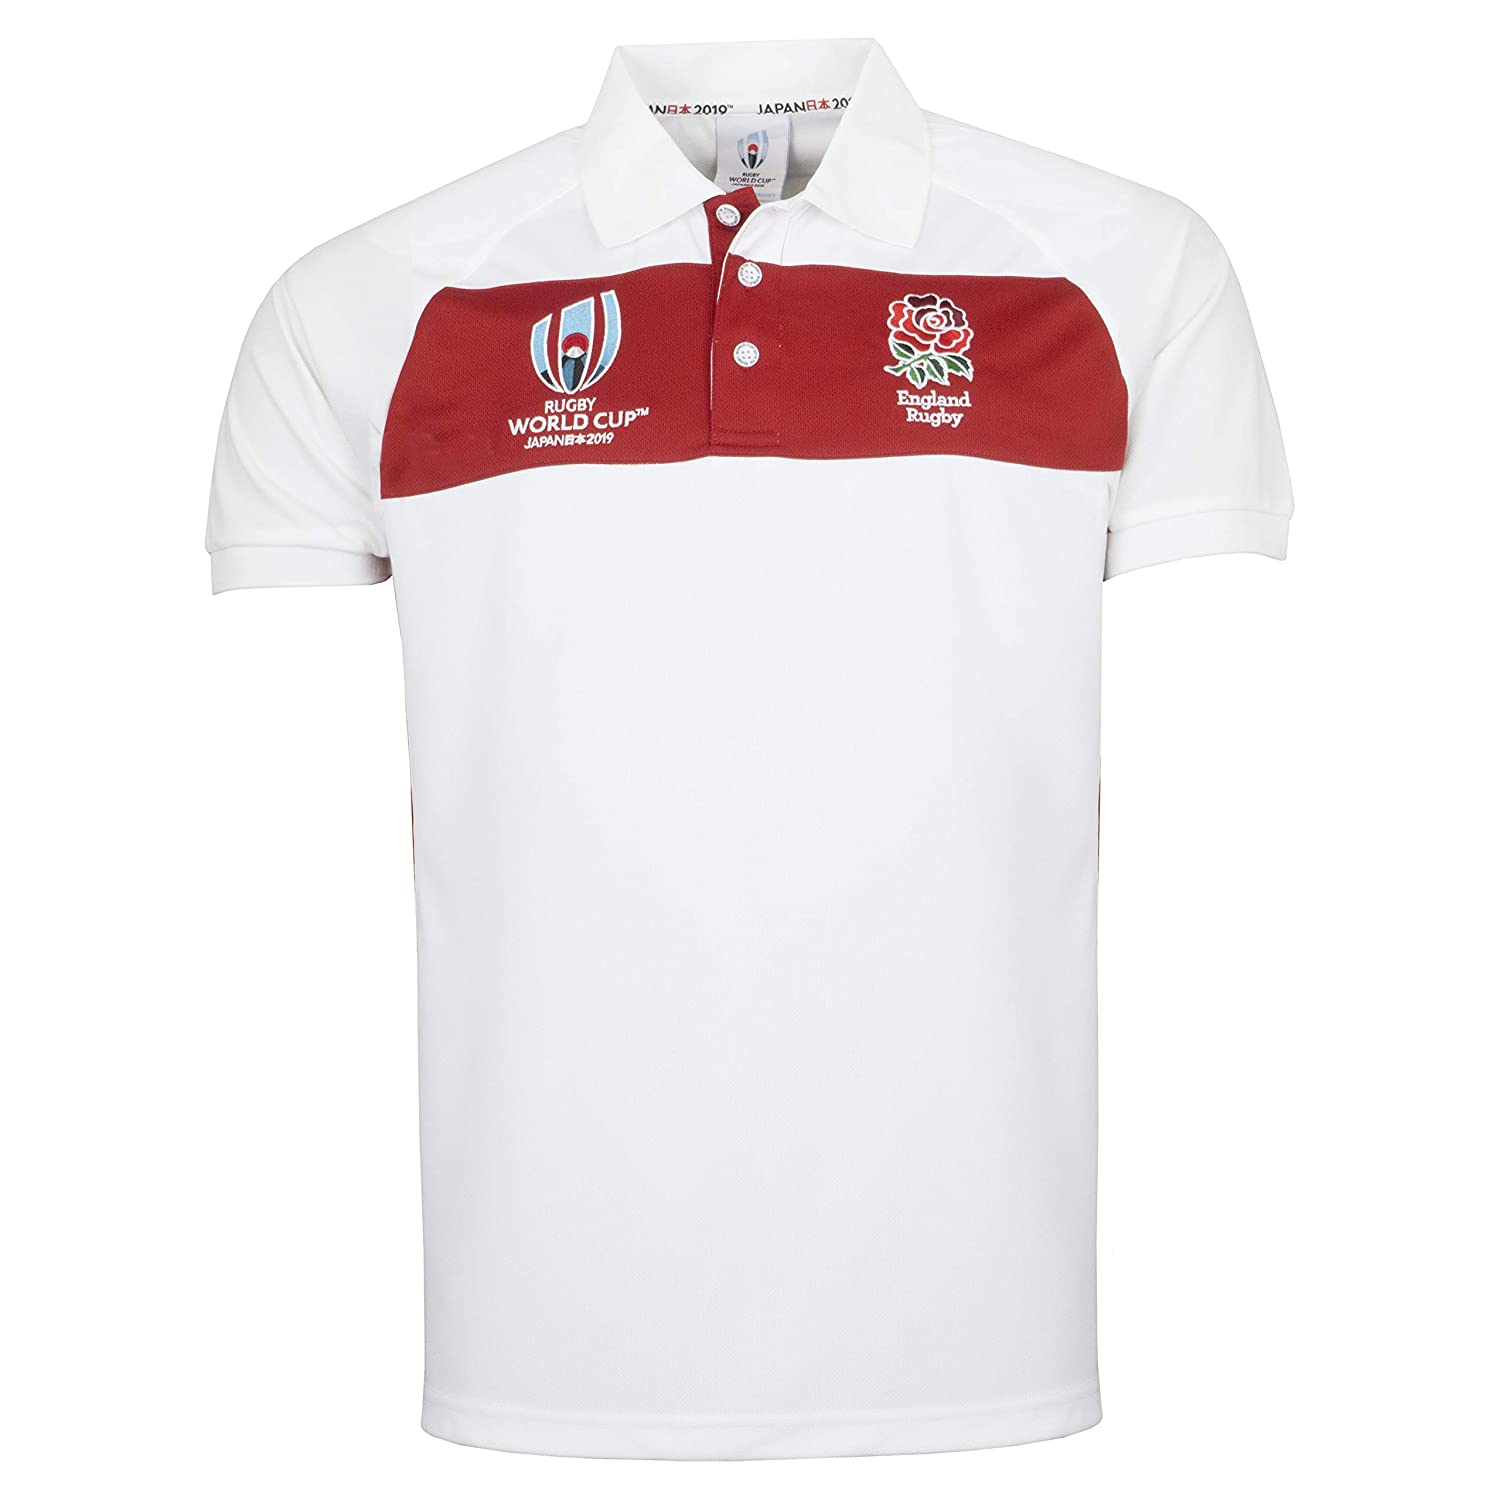 RWC2019 Dual Branded Rugby World Cup Japan 2019 RFU - Polo de ...